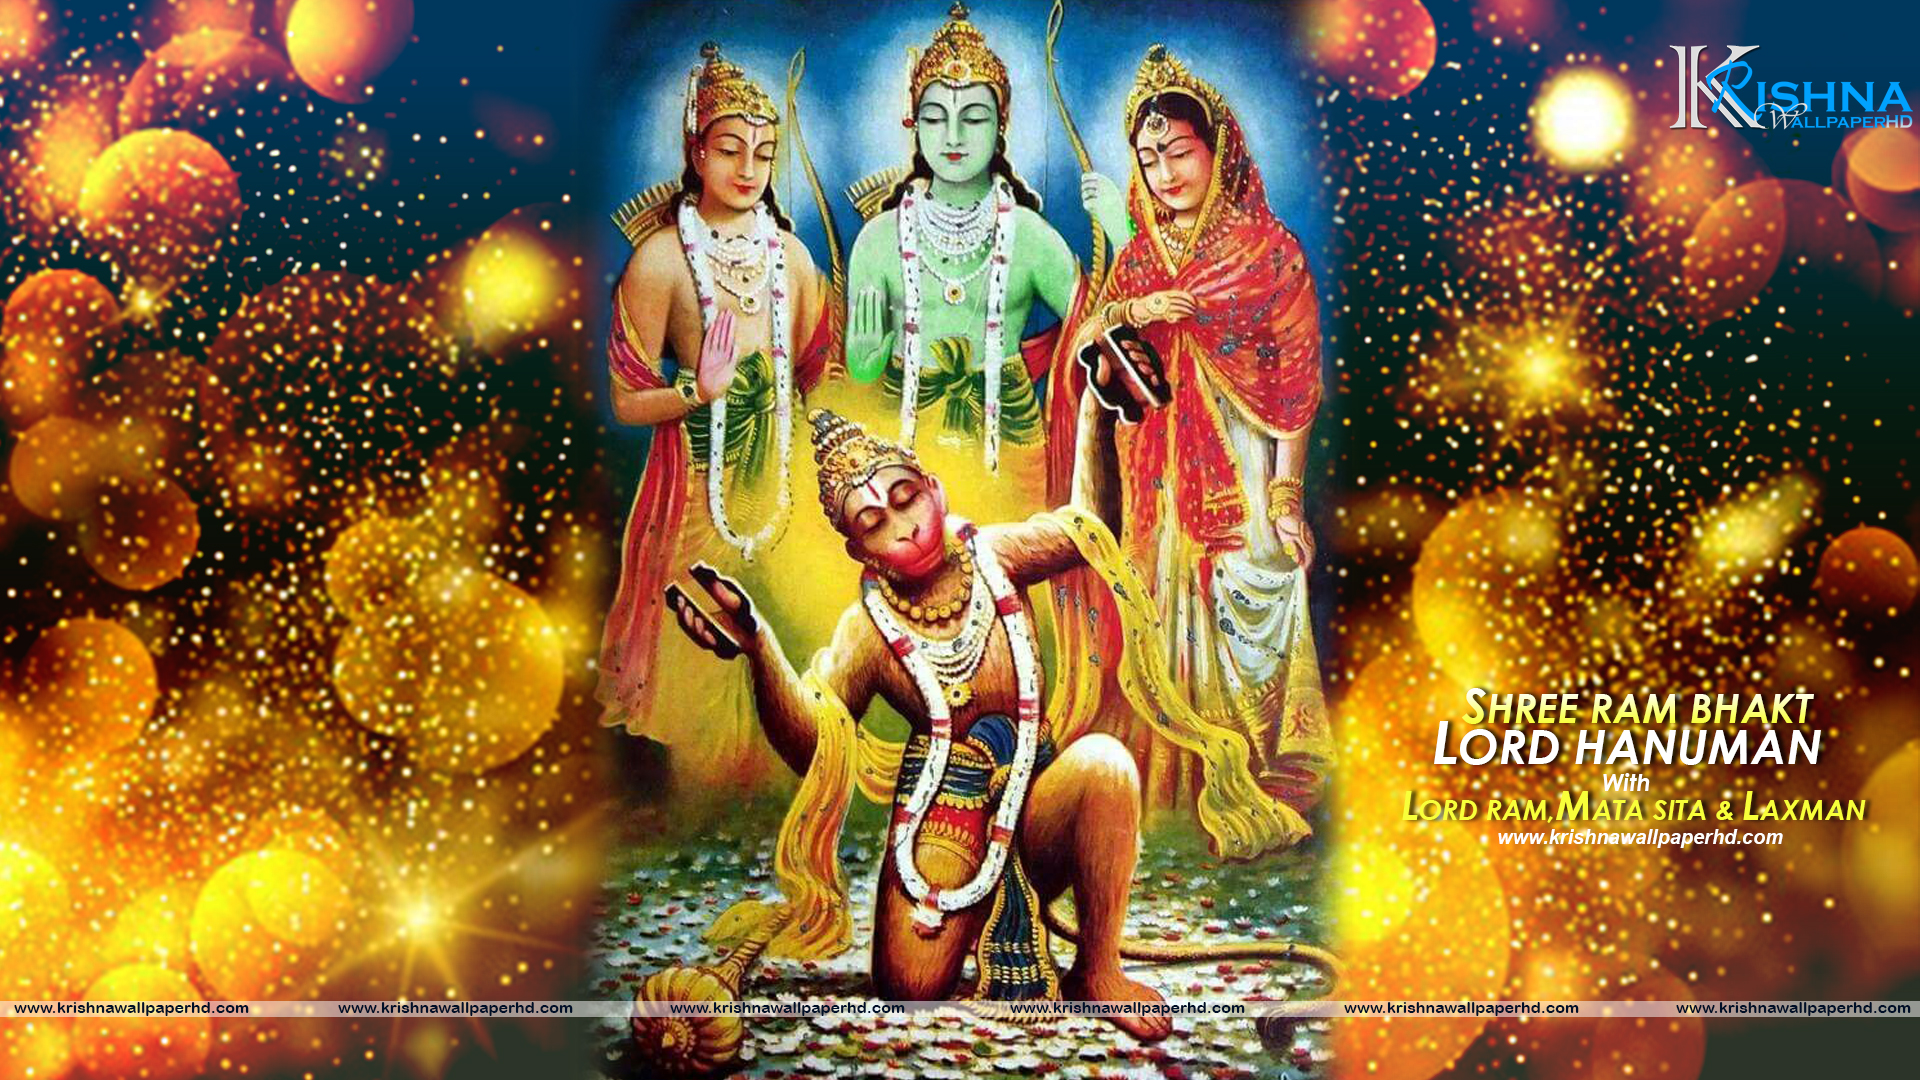 HD Wallpaper of Lord Hanuman Free Download